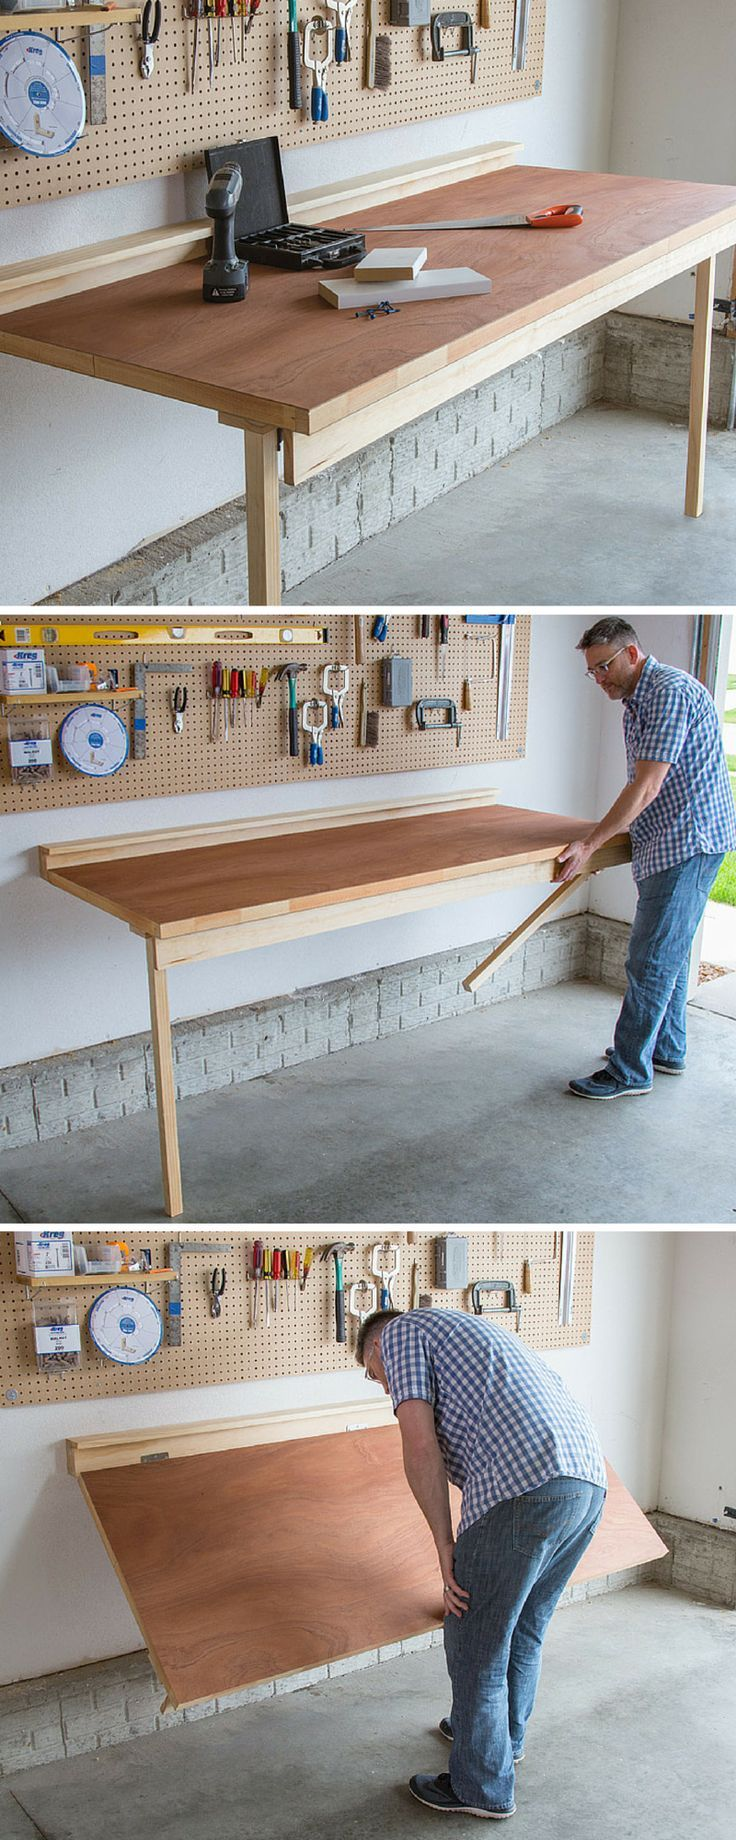 No shop is complete without a workbench, but not everyone's shop space allows…